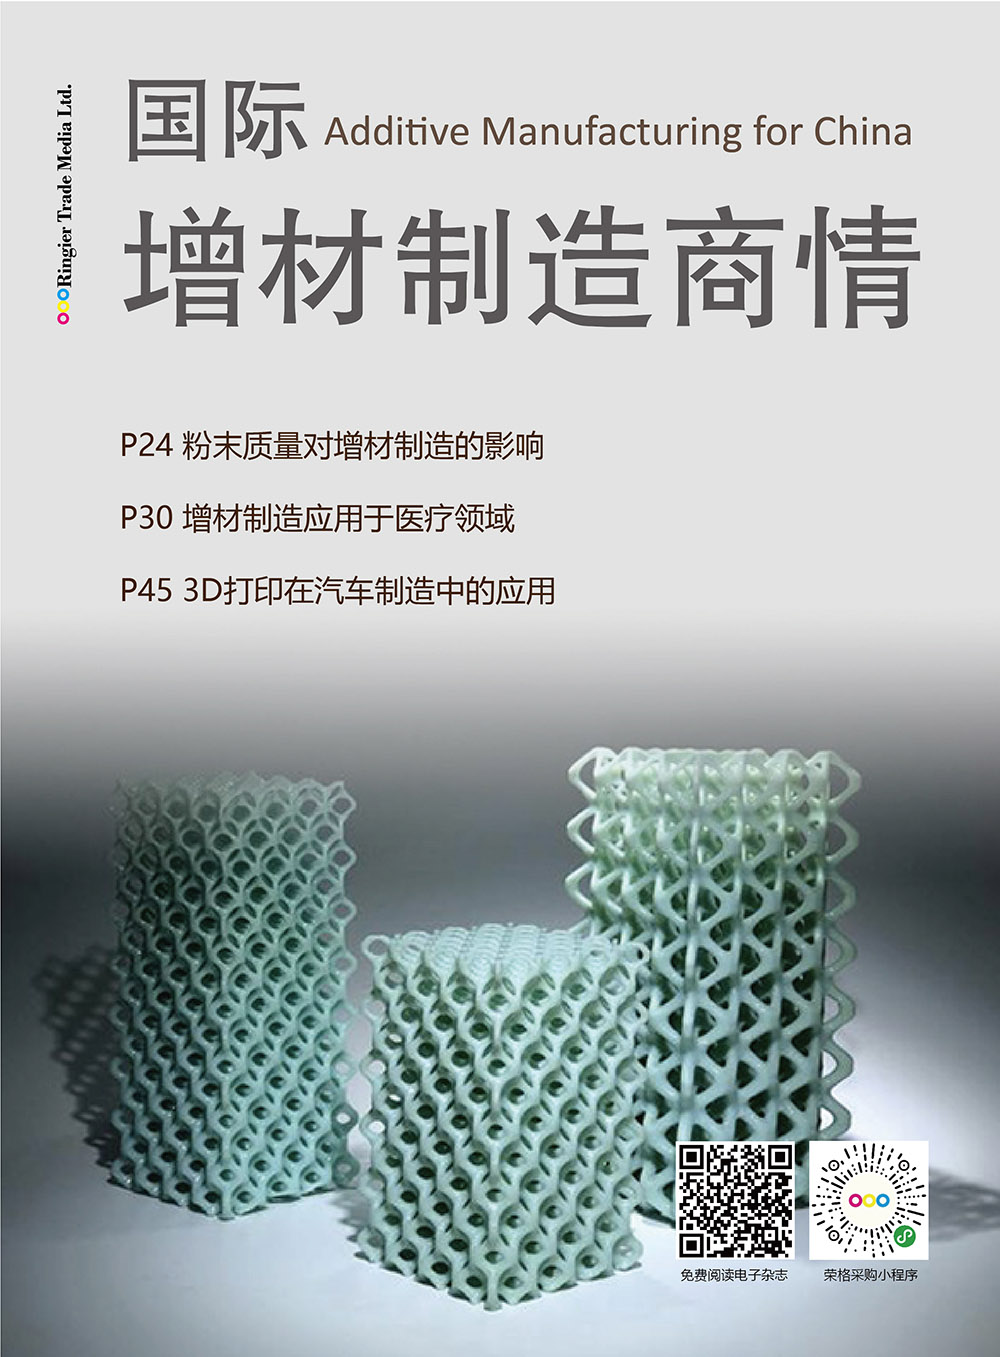 Additive Manufacturing for China